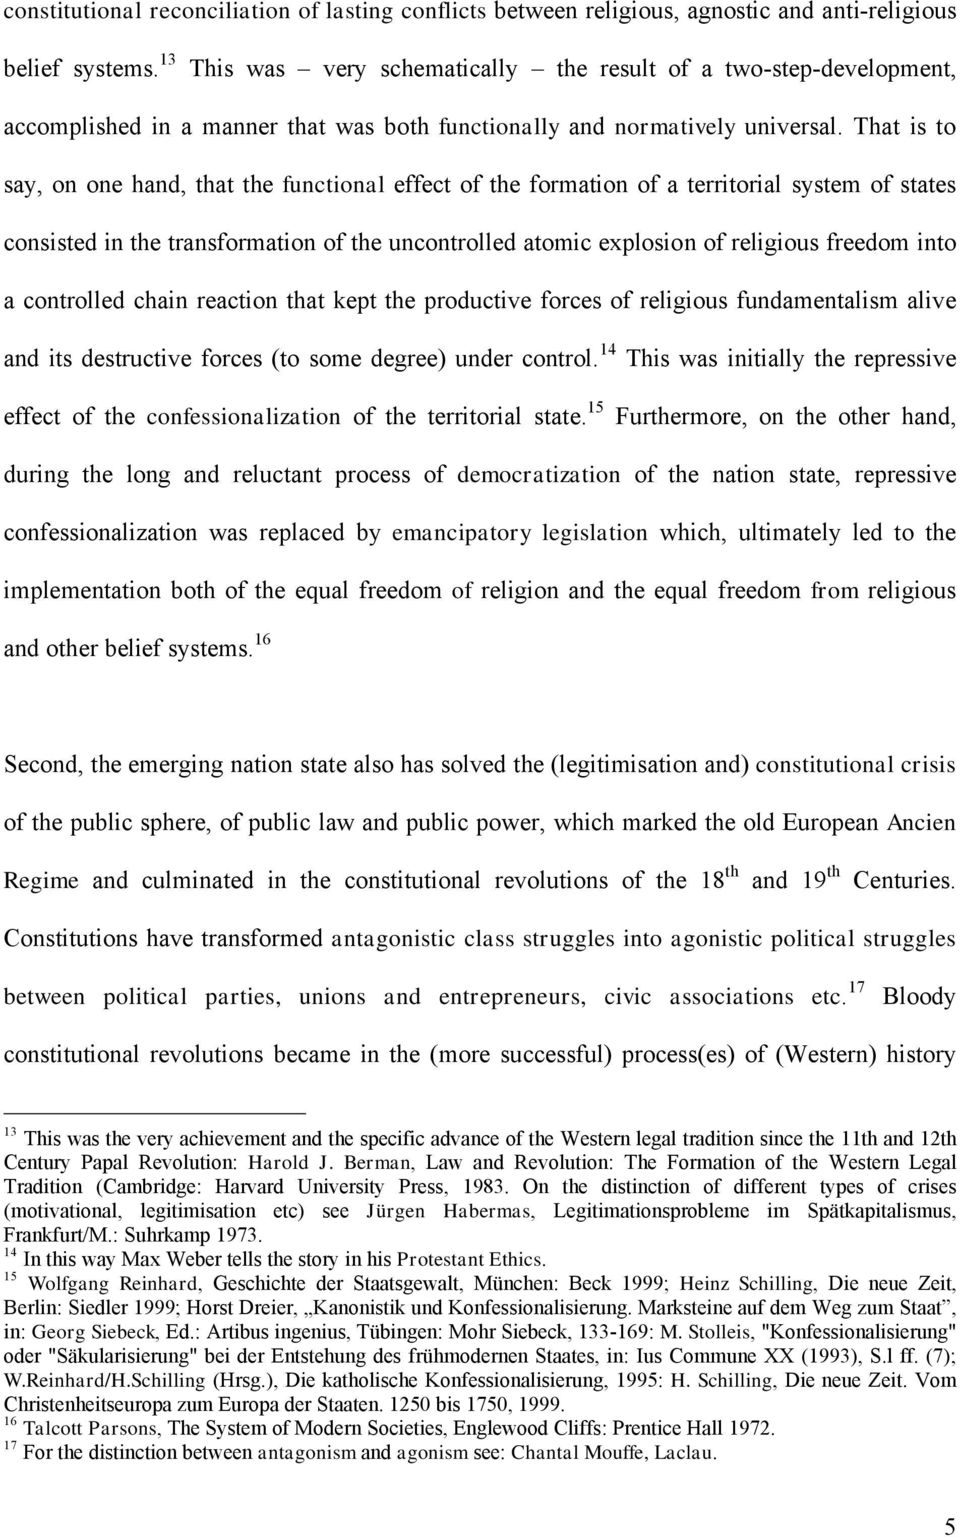 That is to say, on one hand, that the functional effect of the formation of a territorial system of states consisted in the transformation of the uncontrolled atomic explosion of religious freedom